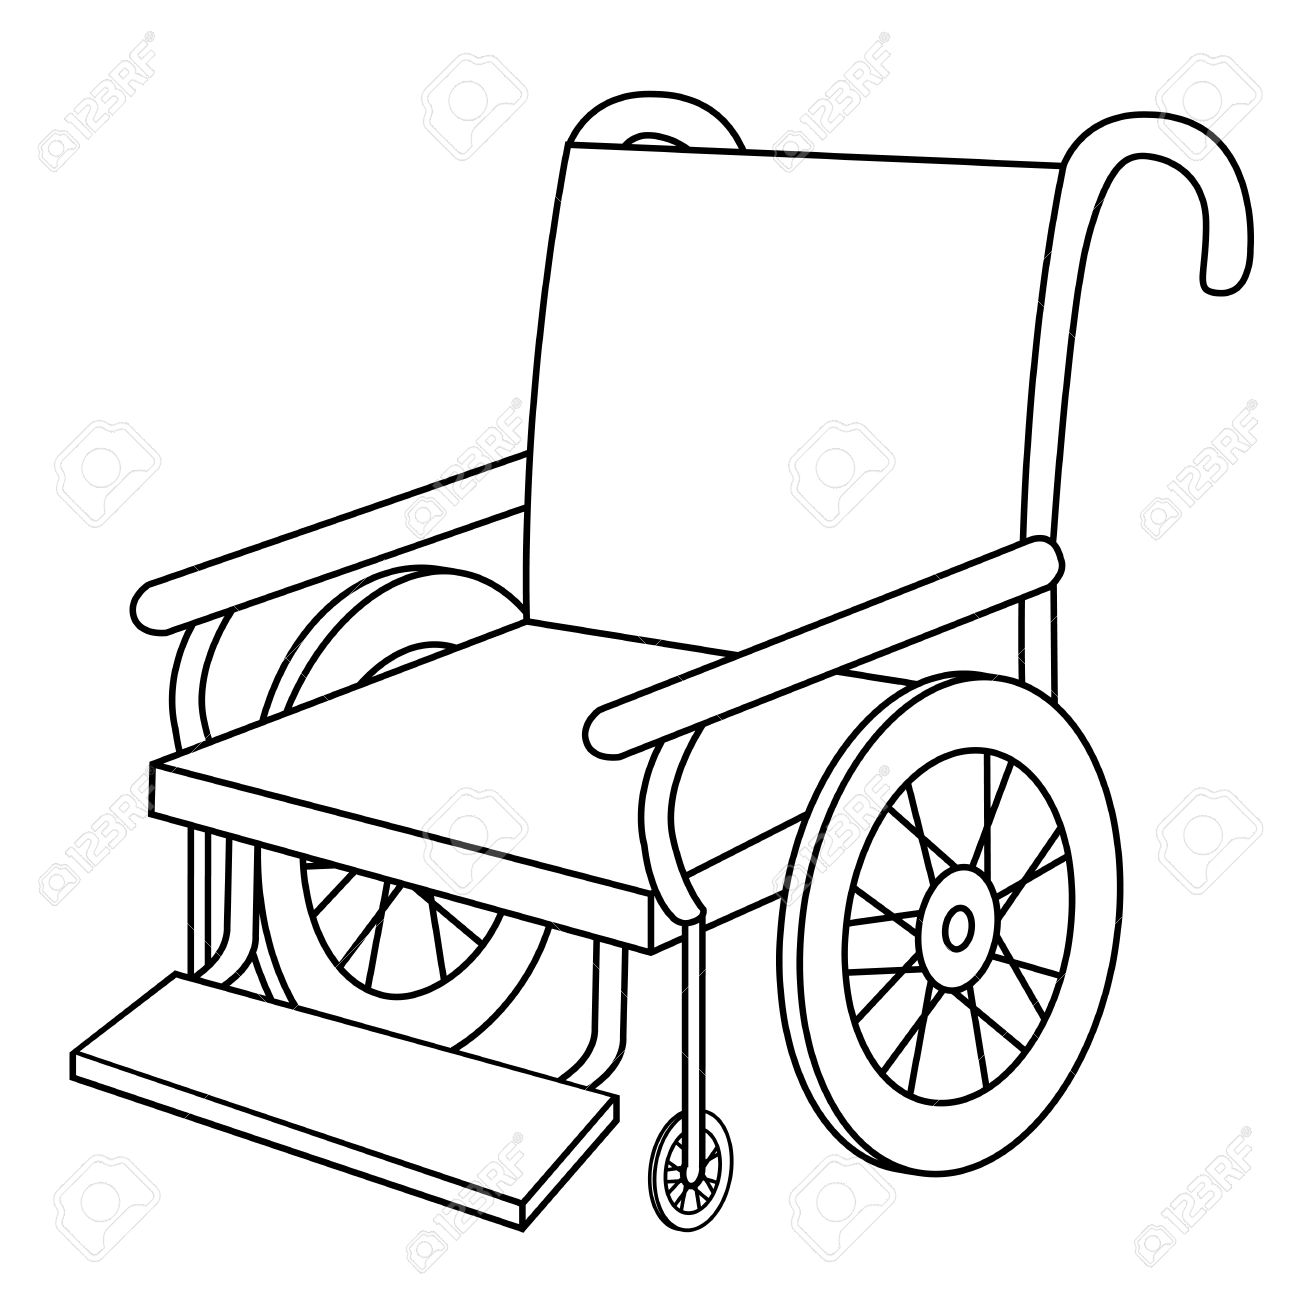 1300x1300 Black Outline Vector Wheel Chair On White Background. Royalty Free